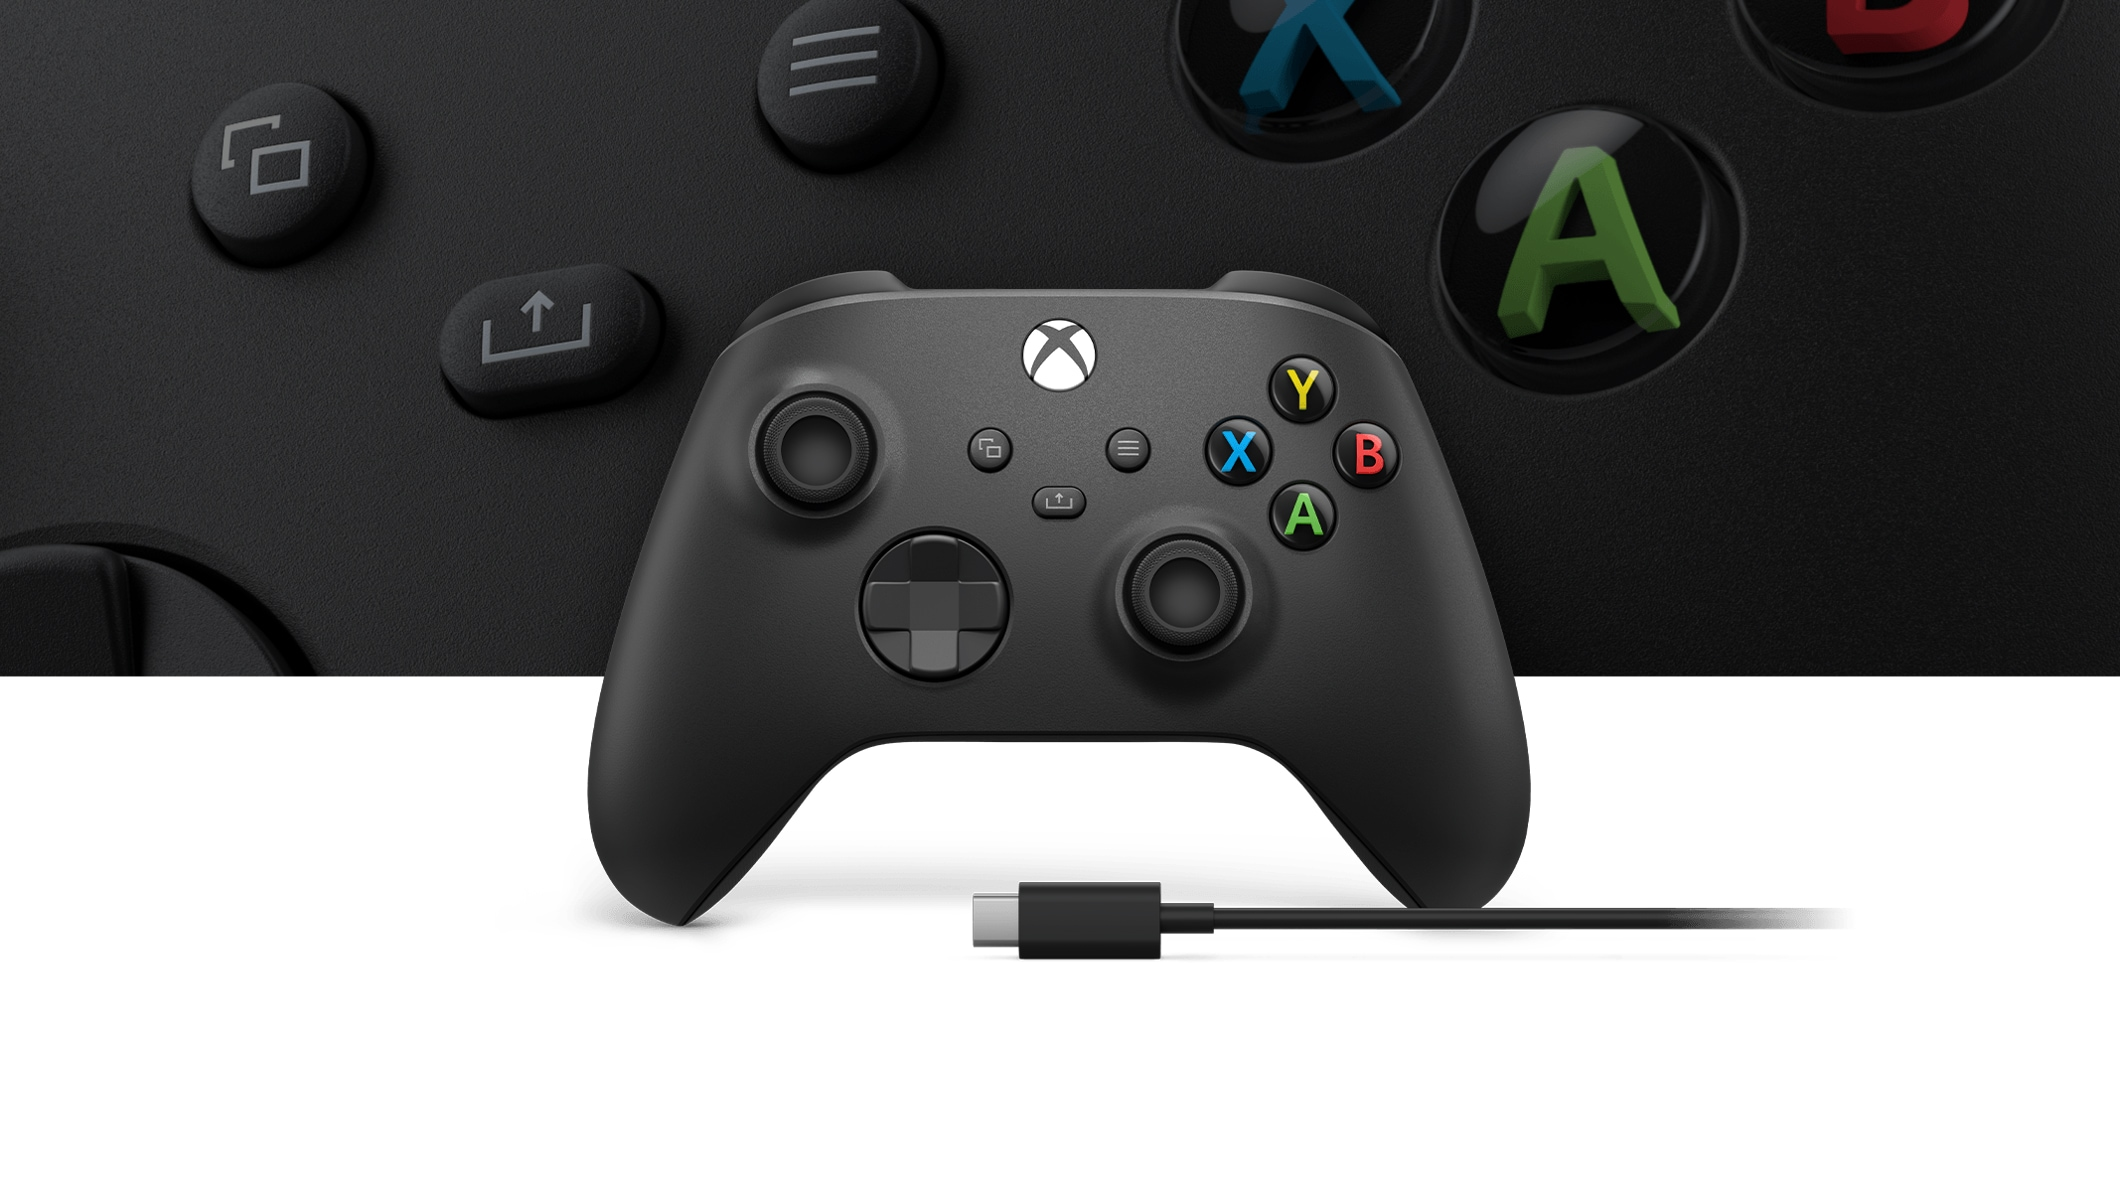 Xbox Wireless Controller + USB-C® Cable with a close-up view of the controller in the background